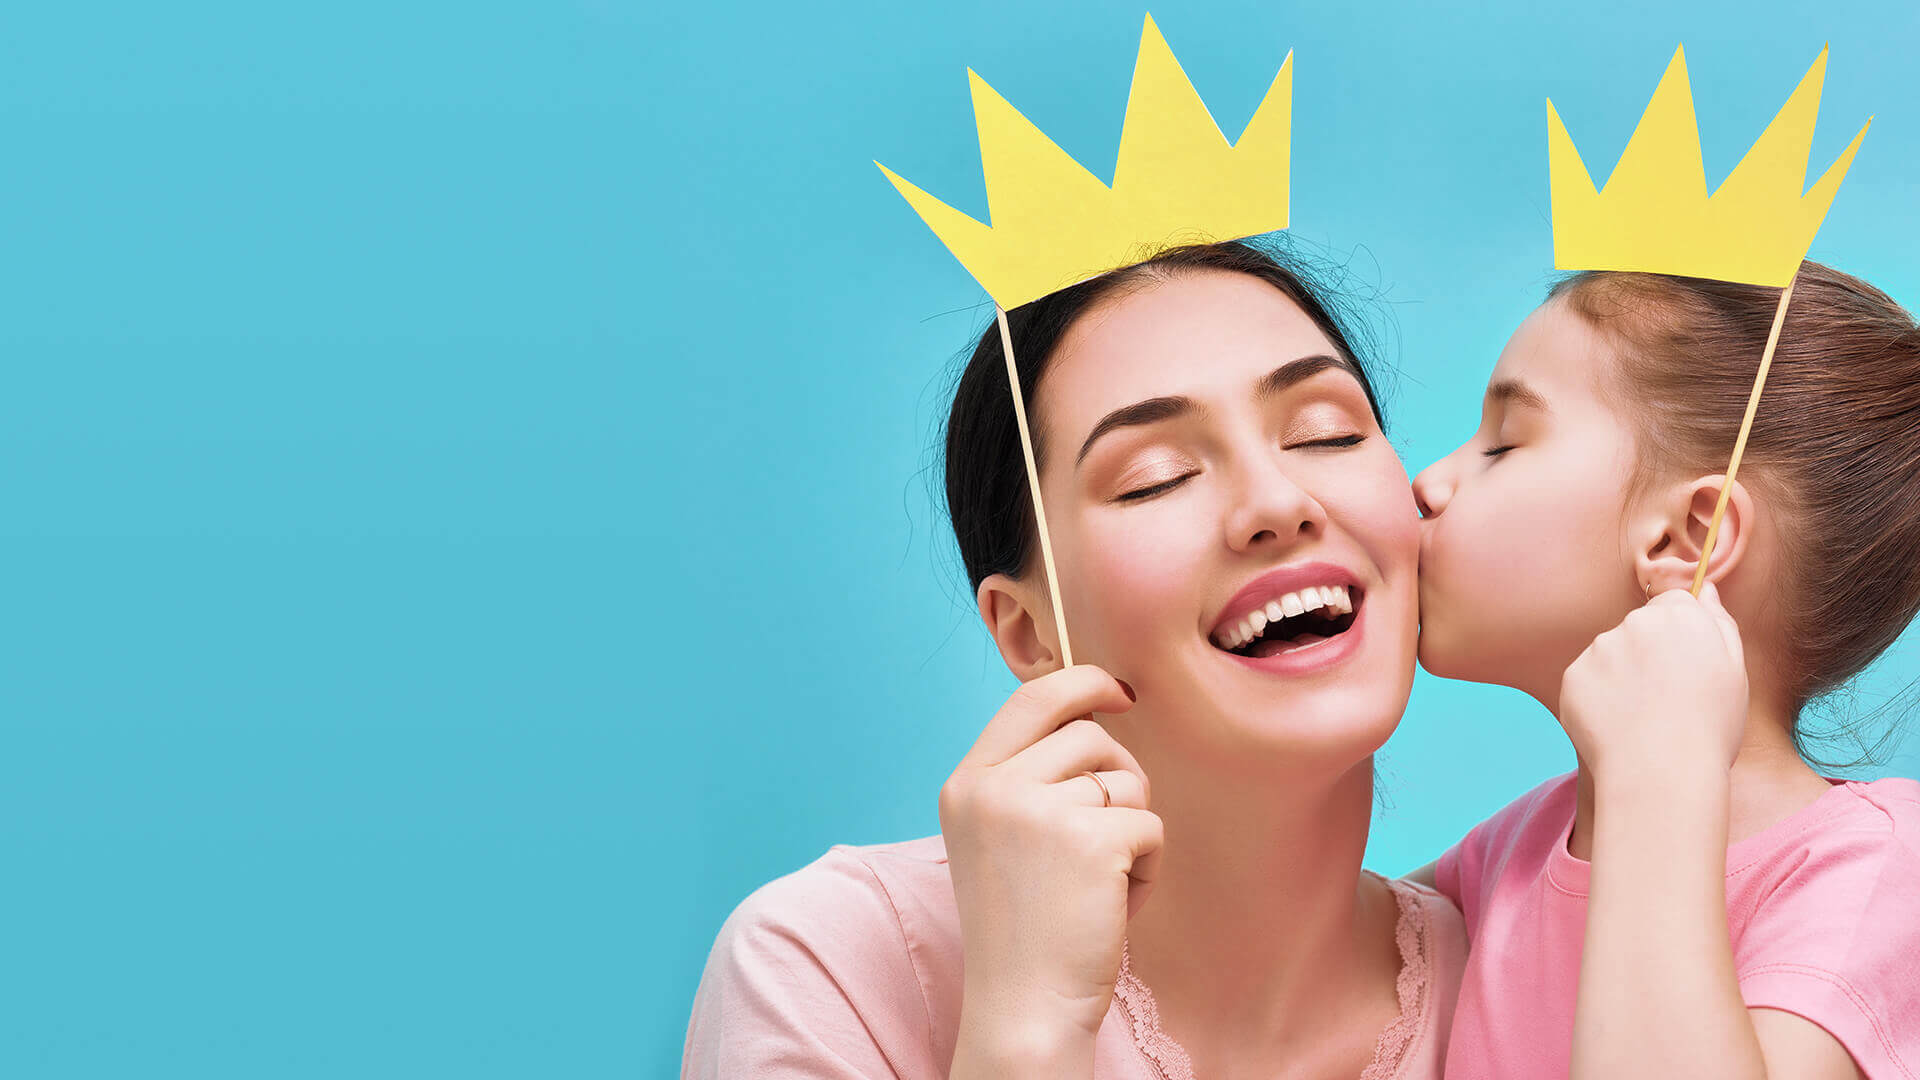 Image of mom and daughter holding paper crowns on their head. Tespo is good for the whole family.